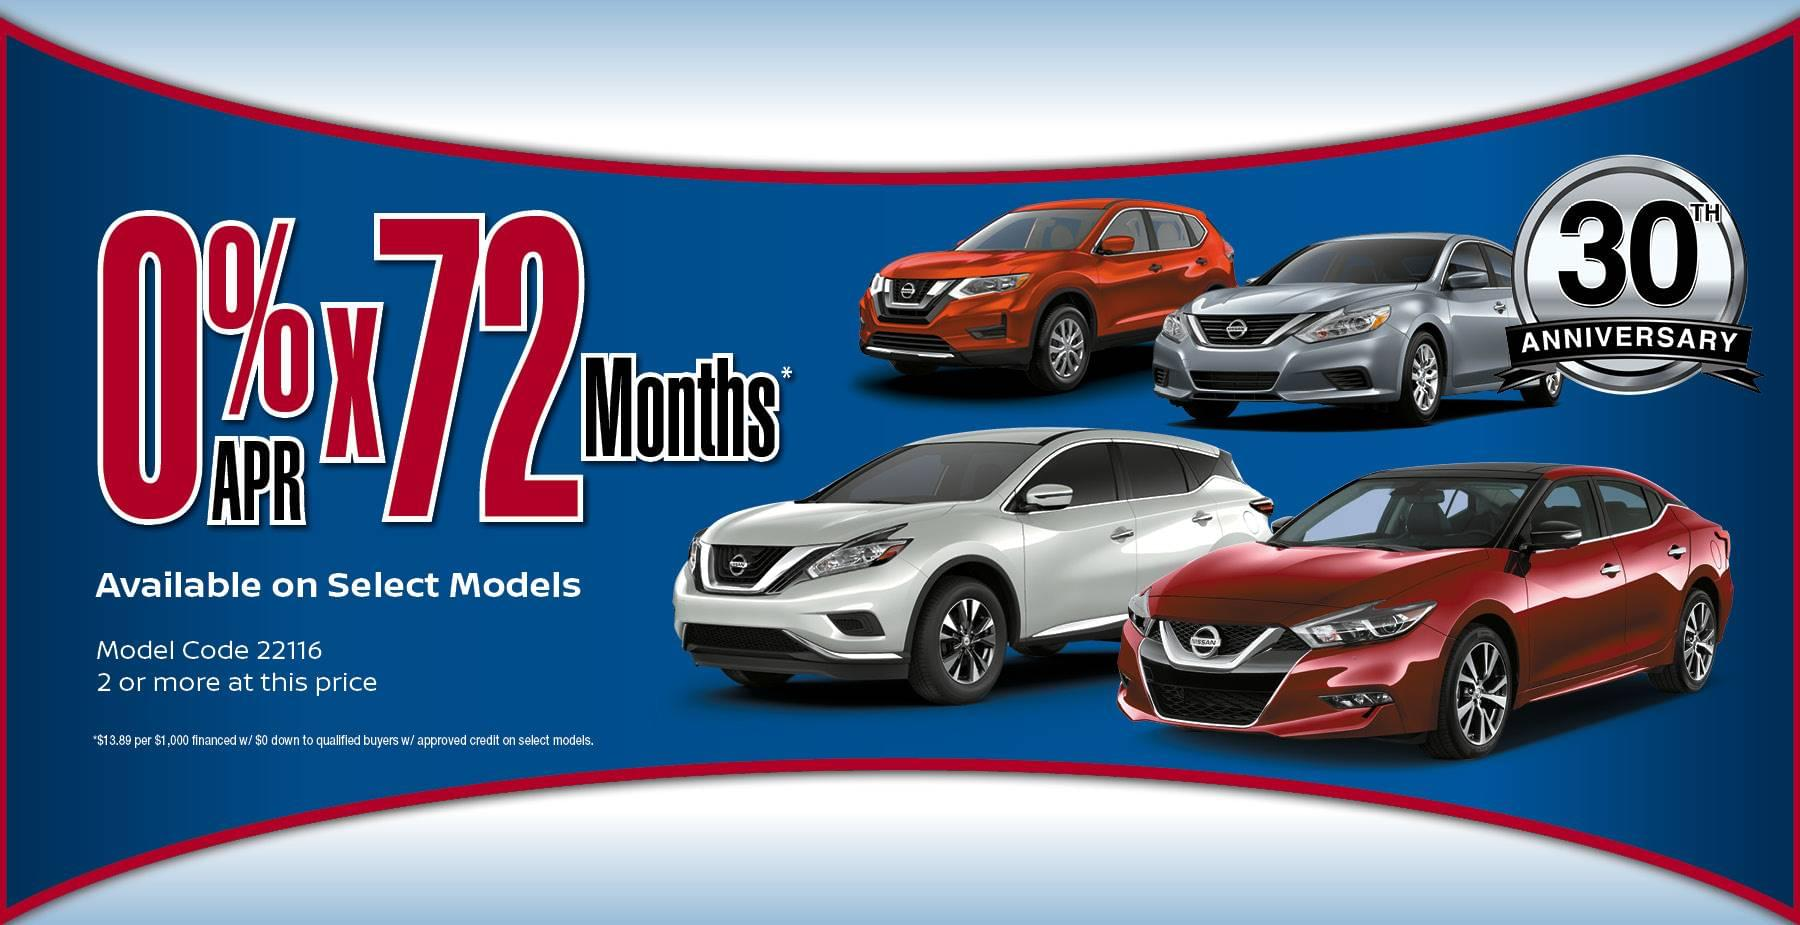 0% for 72 Months on Select Models!